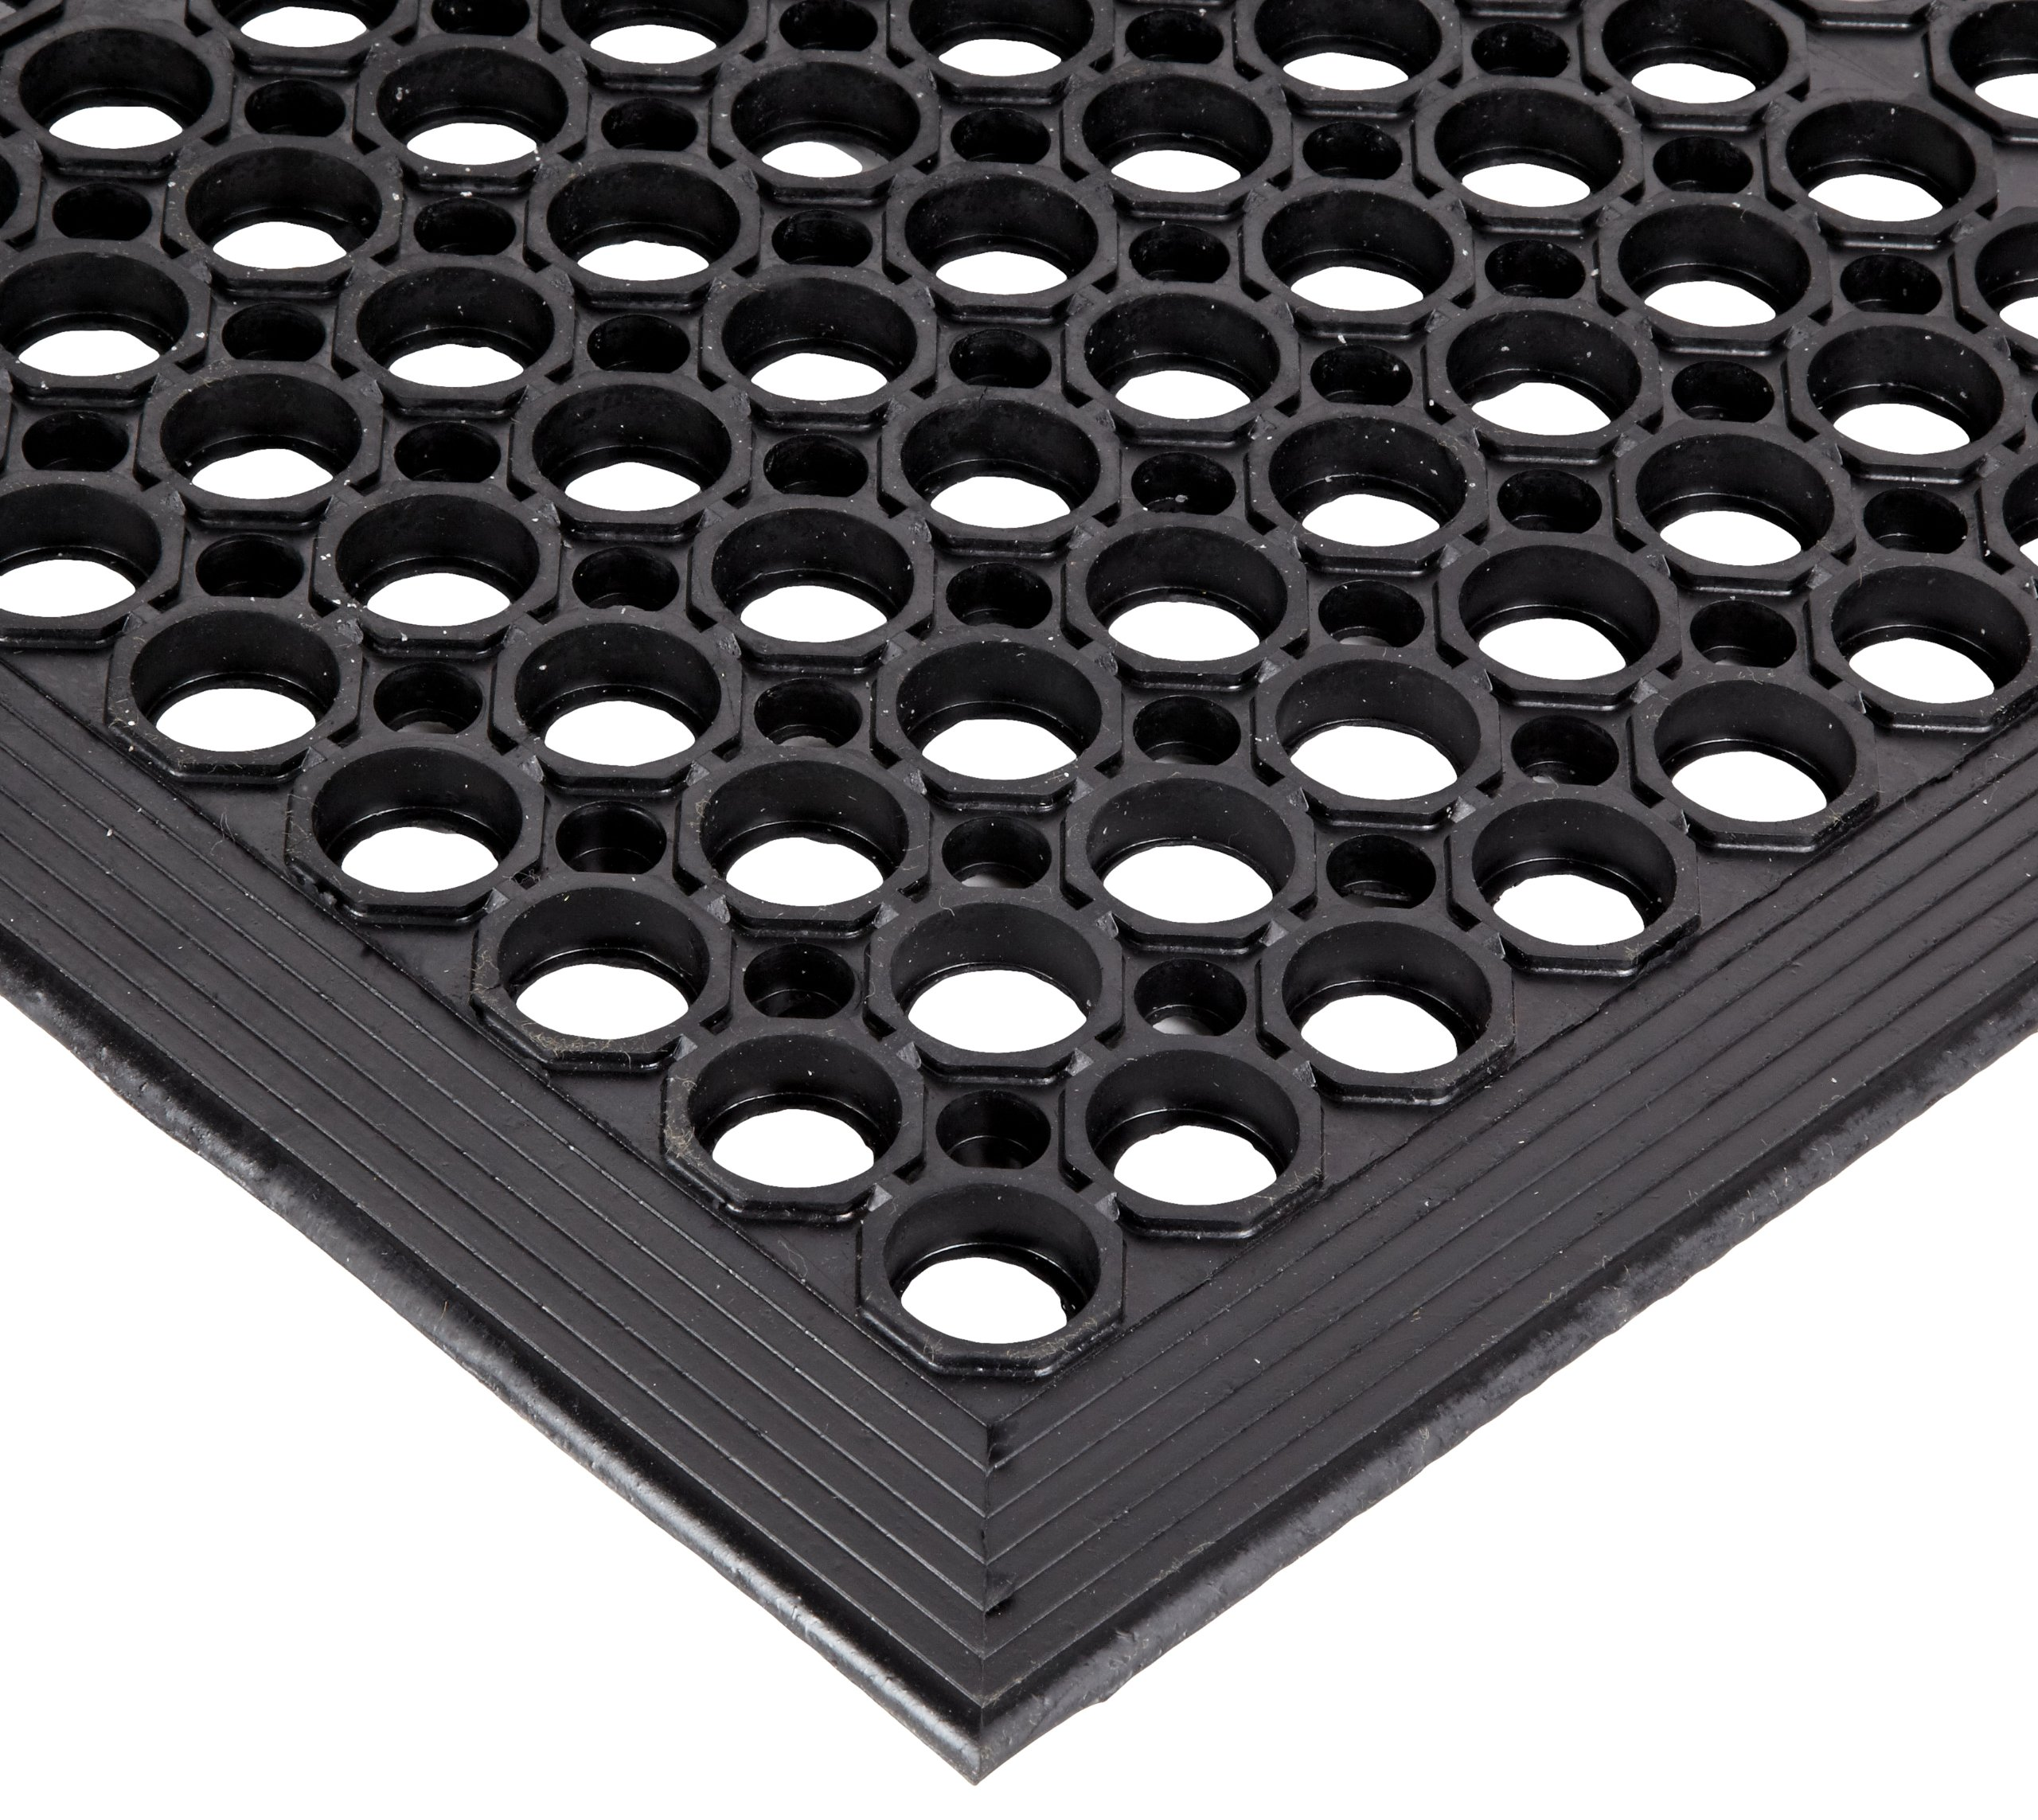 NoTrax Rubber 562 Sanitop Anti-Fatigue Drainage Mat, for Wet Areas, 3' Width x 10' Length x 1/2'' Thickness, Black